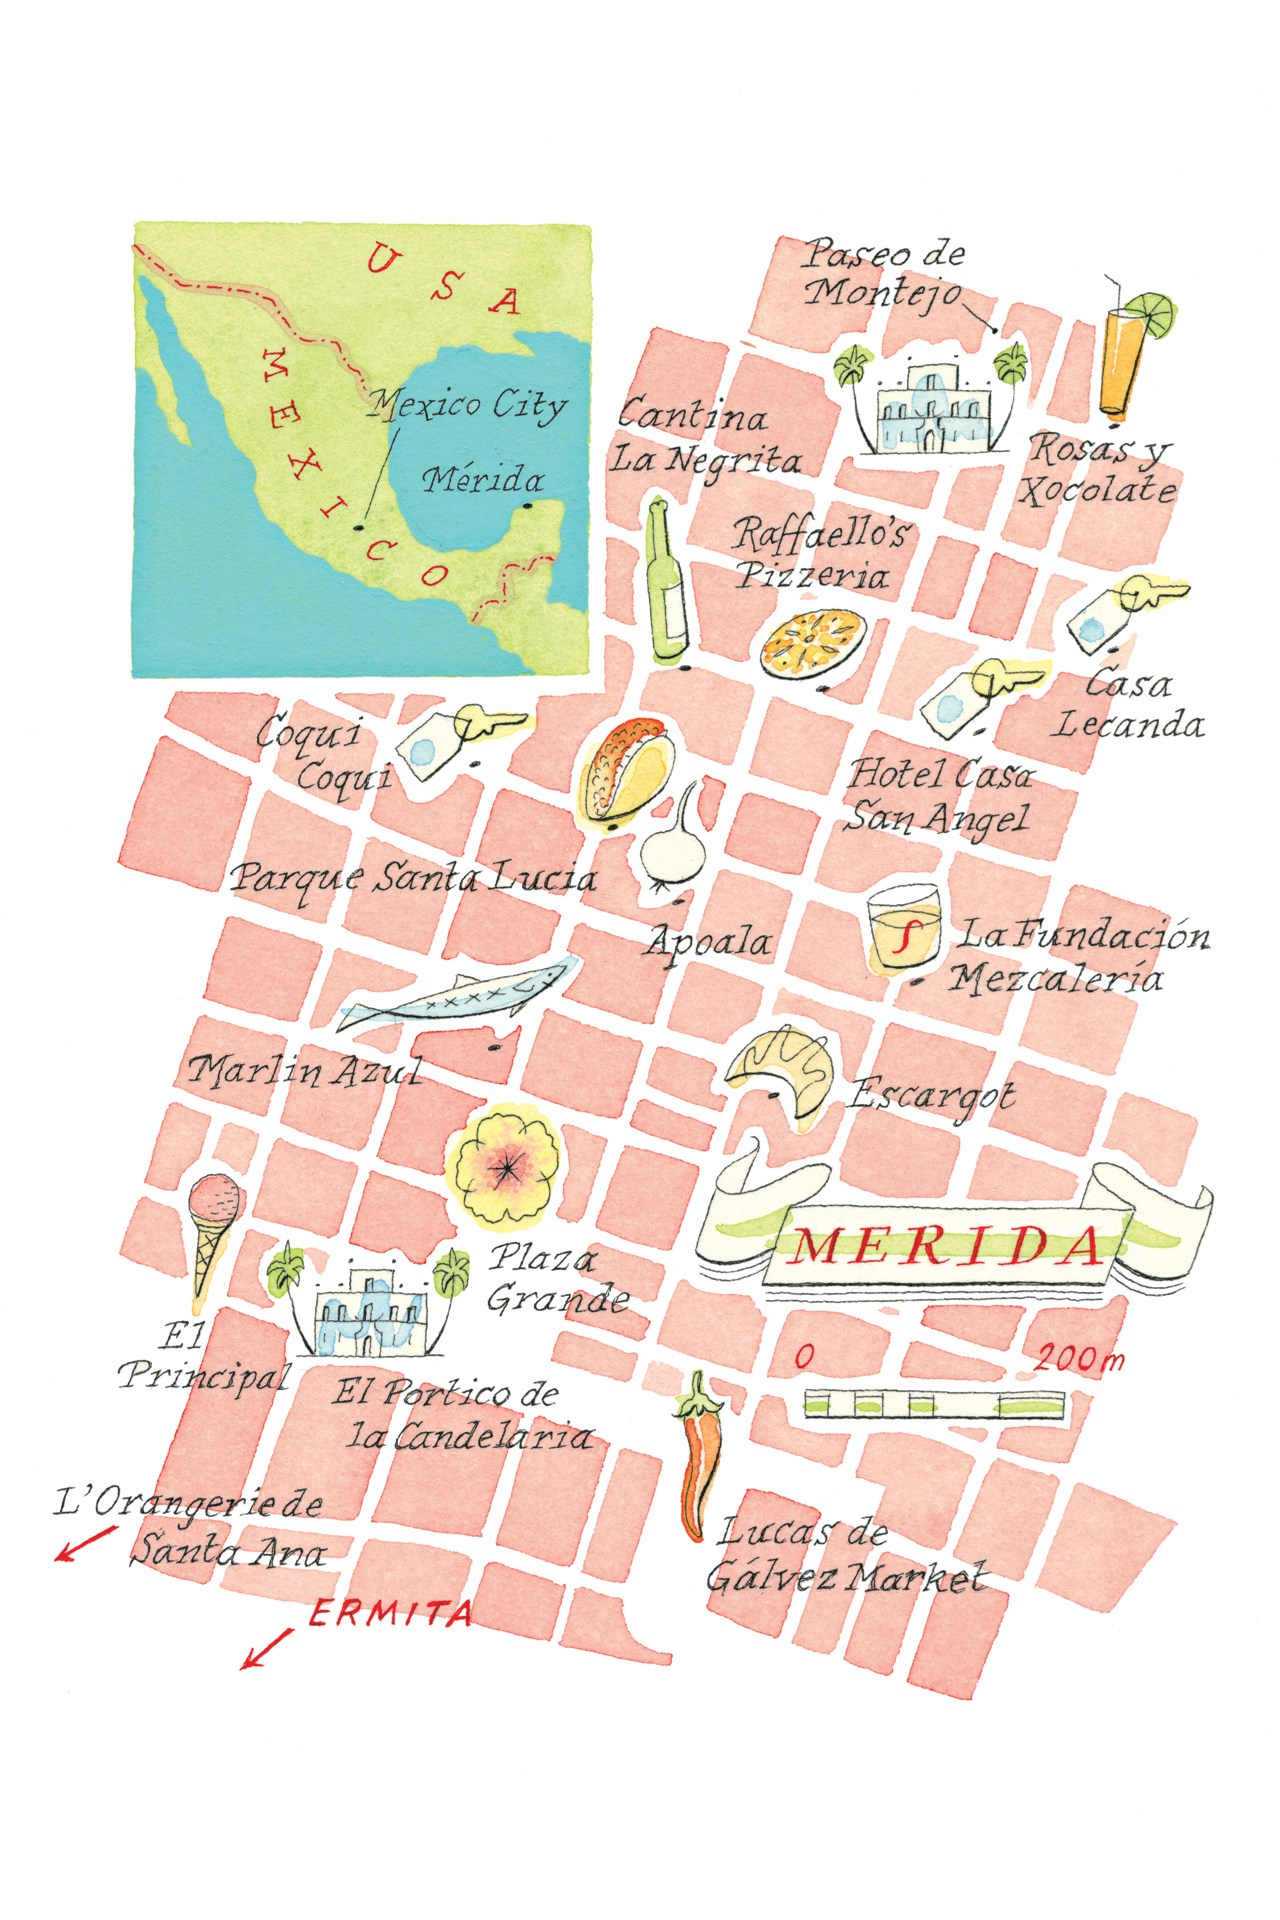 Merida Mexico Map Conde Nast Traveller 7july14 Neil Gower Urbano